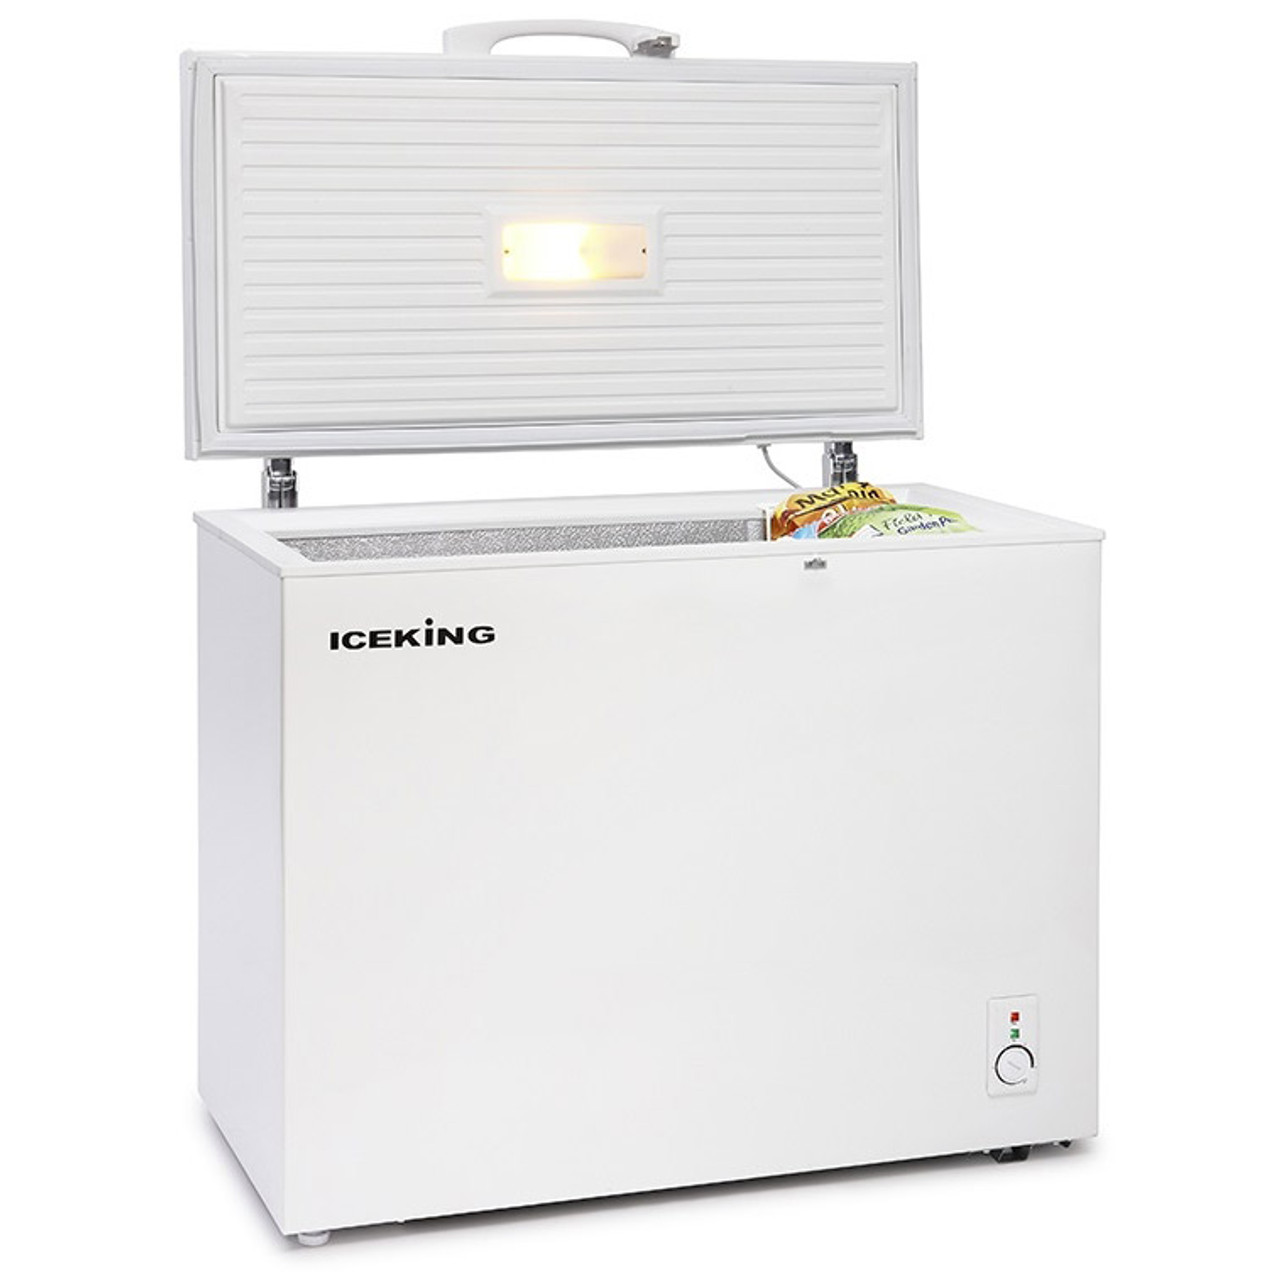 Ice King CF200W 98cm Chest Freezer in White For a safe and secure storage solution for your frozen food the IceKing CF200W A+ Rated Chest Freezer is ideal.It has a huge 200 Litre capacity, moveable storage basket & convenient light inside the lockable lid.   Description:  200 Litre Capacity A+ Energy Rating 1 Basket Operating Light Colour: White H845 x W980x D560 mm Fast Freeze